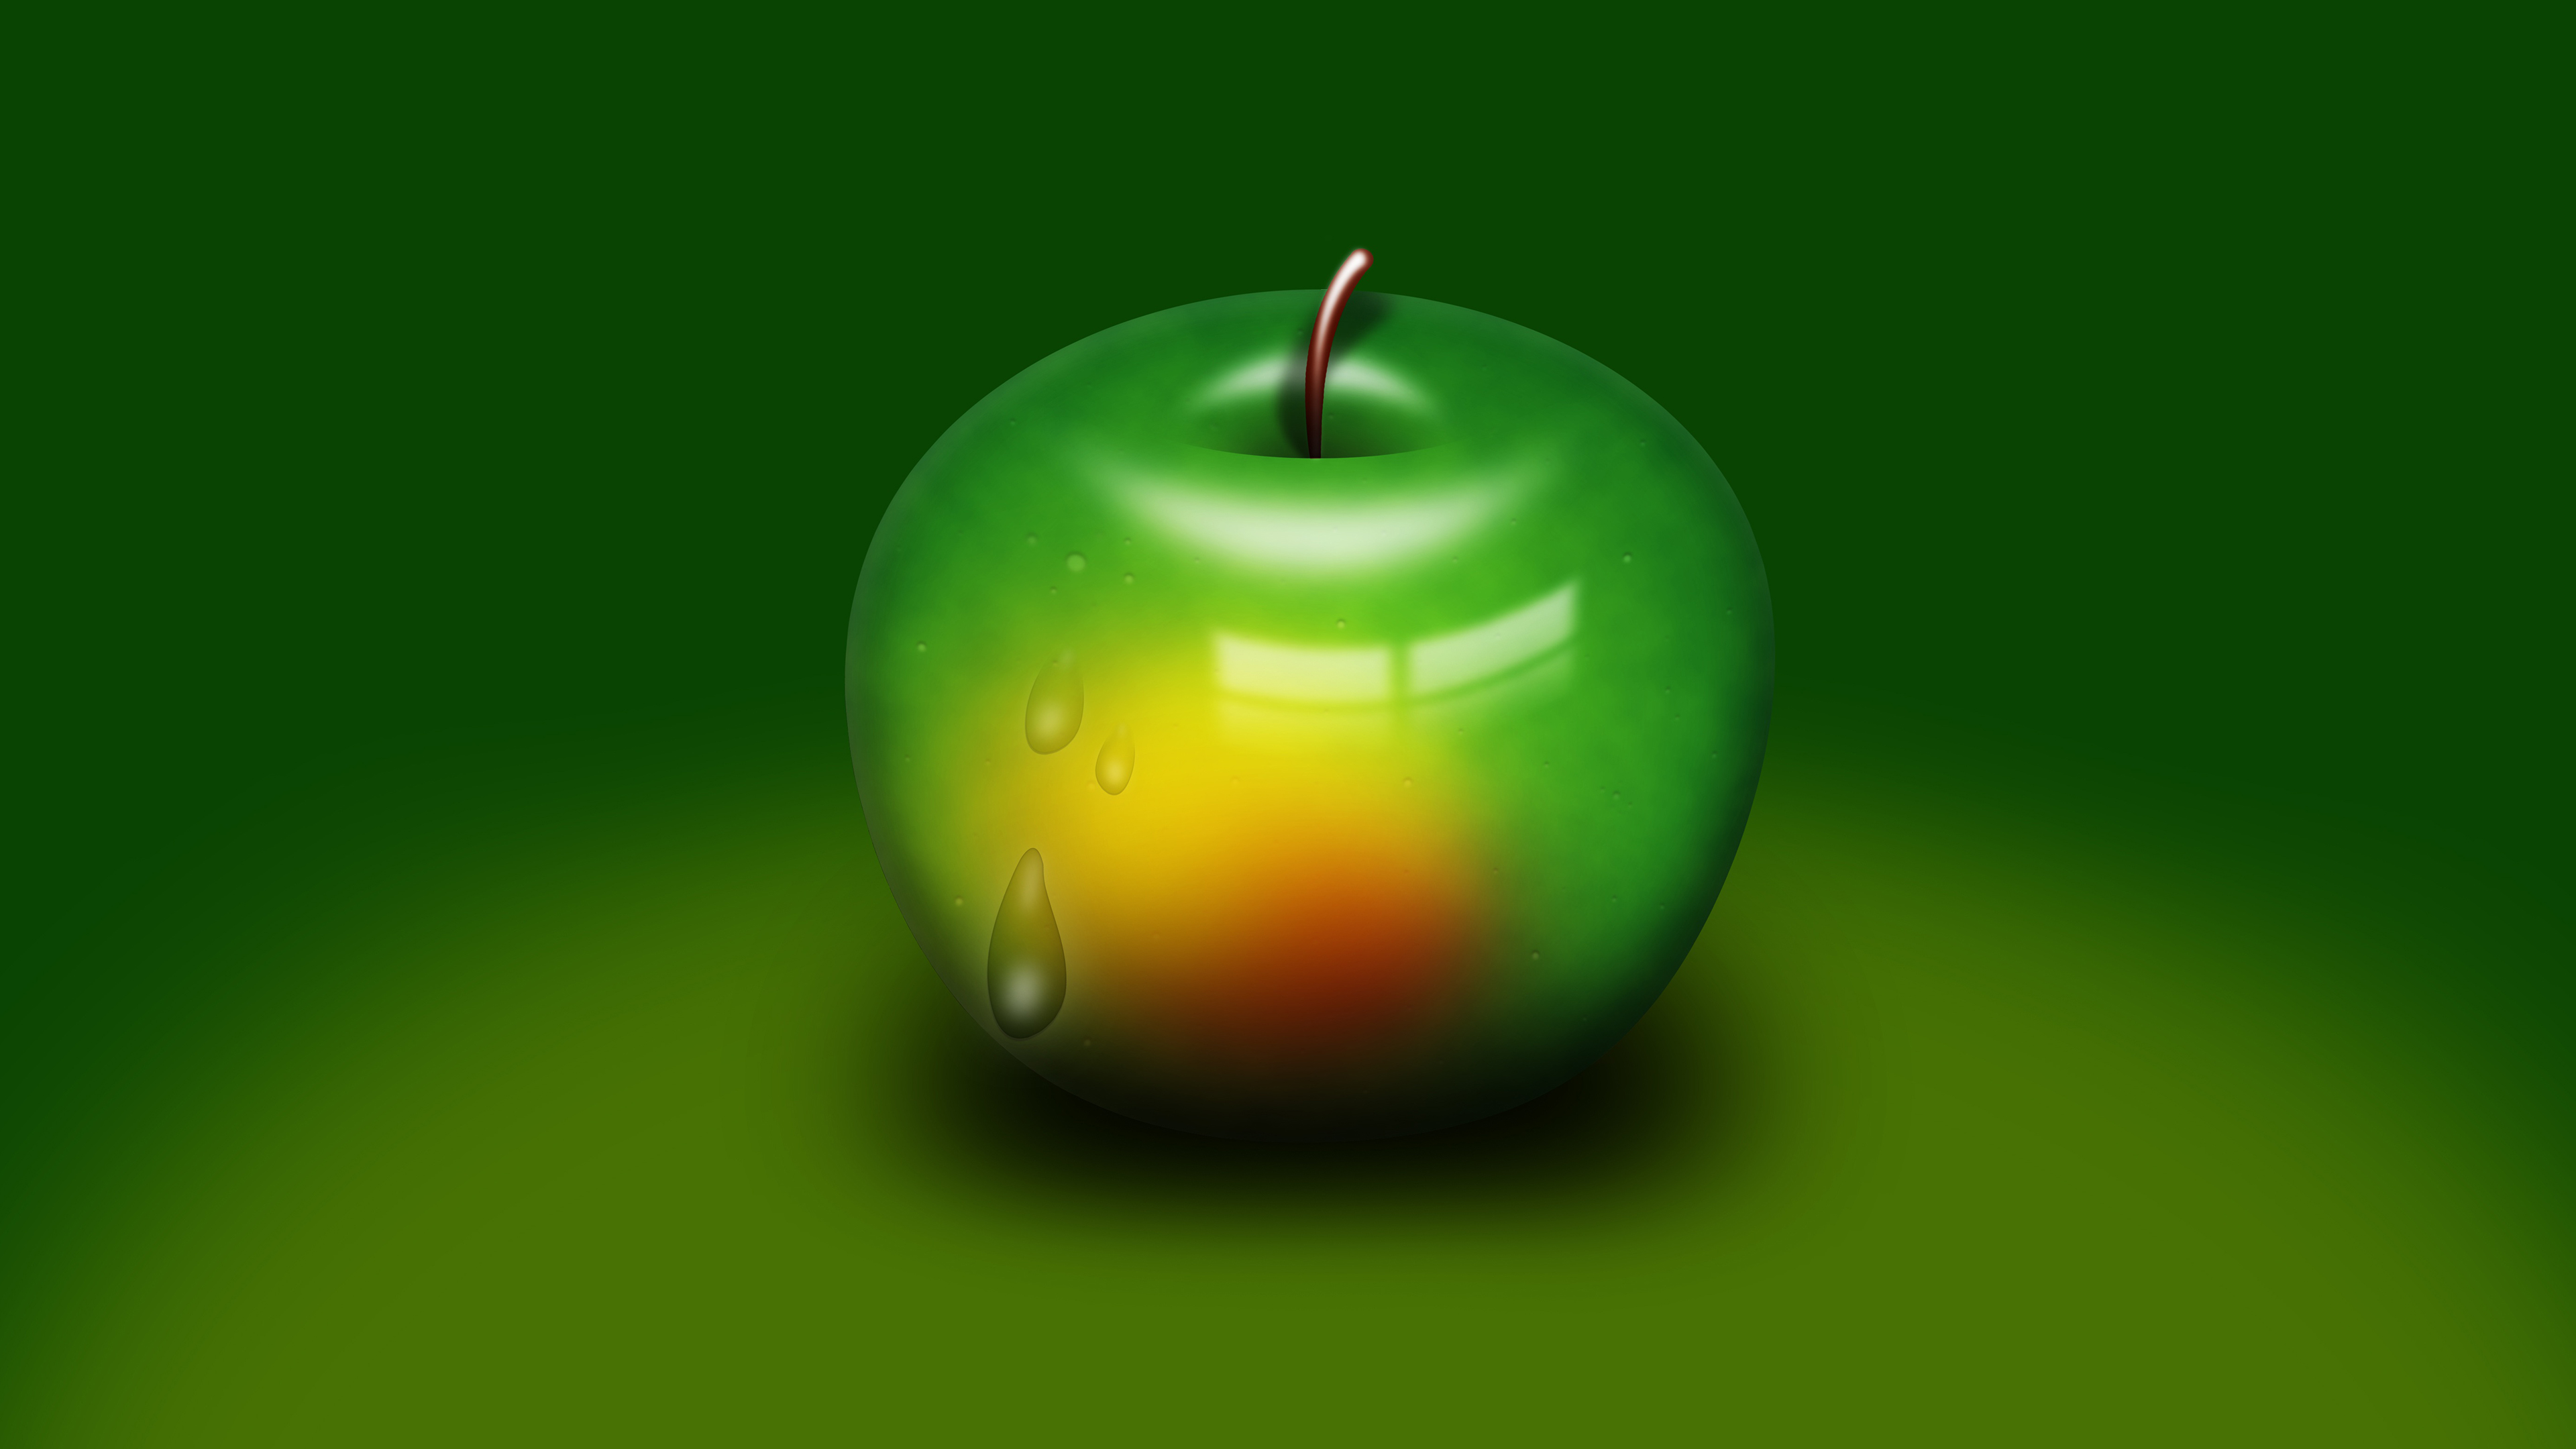 4k Green Apple Wallpaper Hd